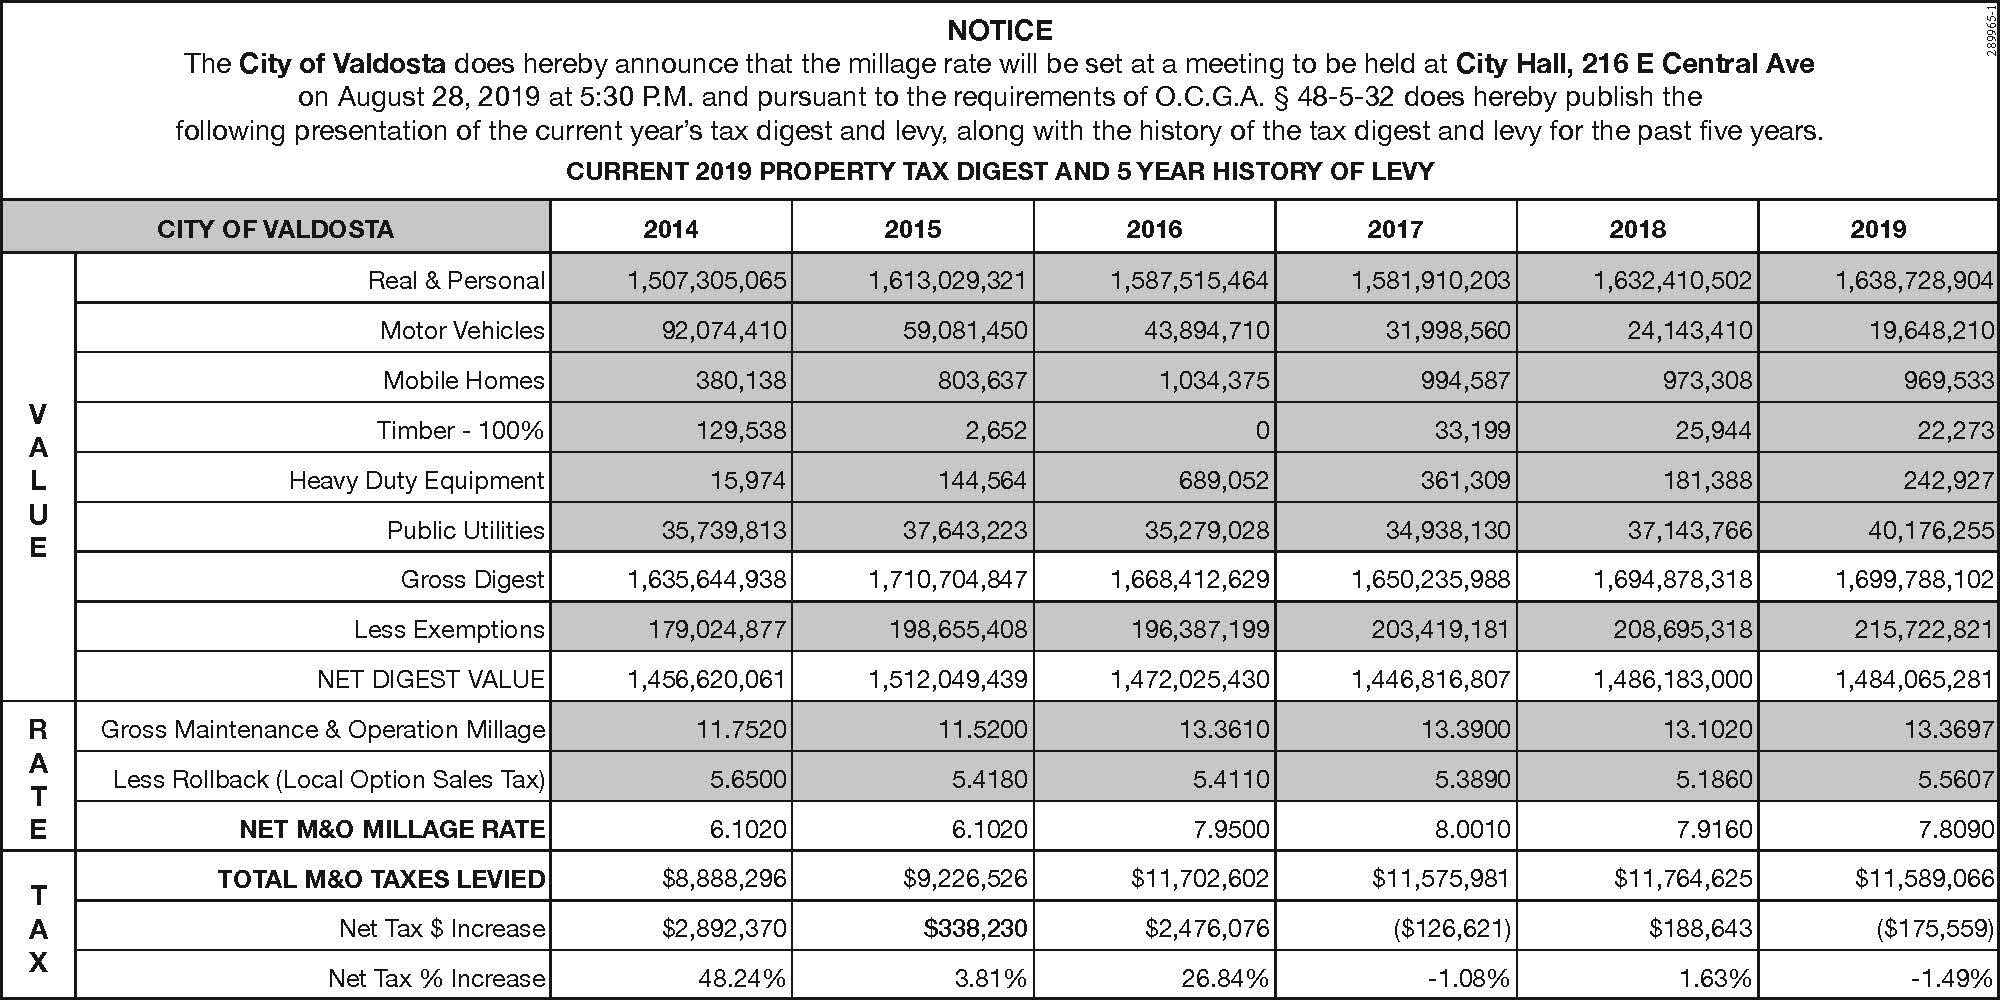 2019 Tax Digest & 5 Year Levy History